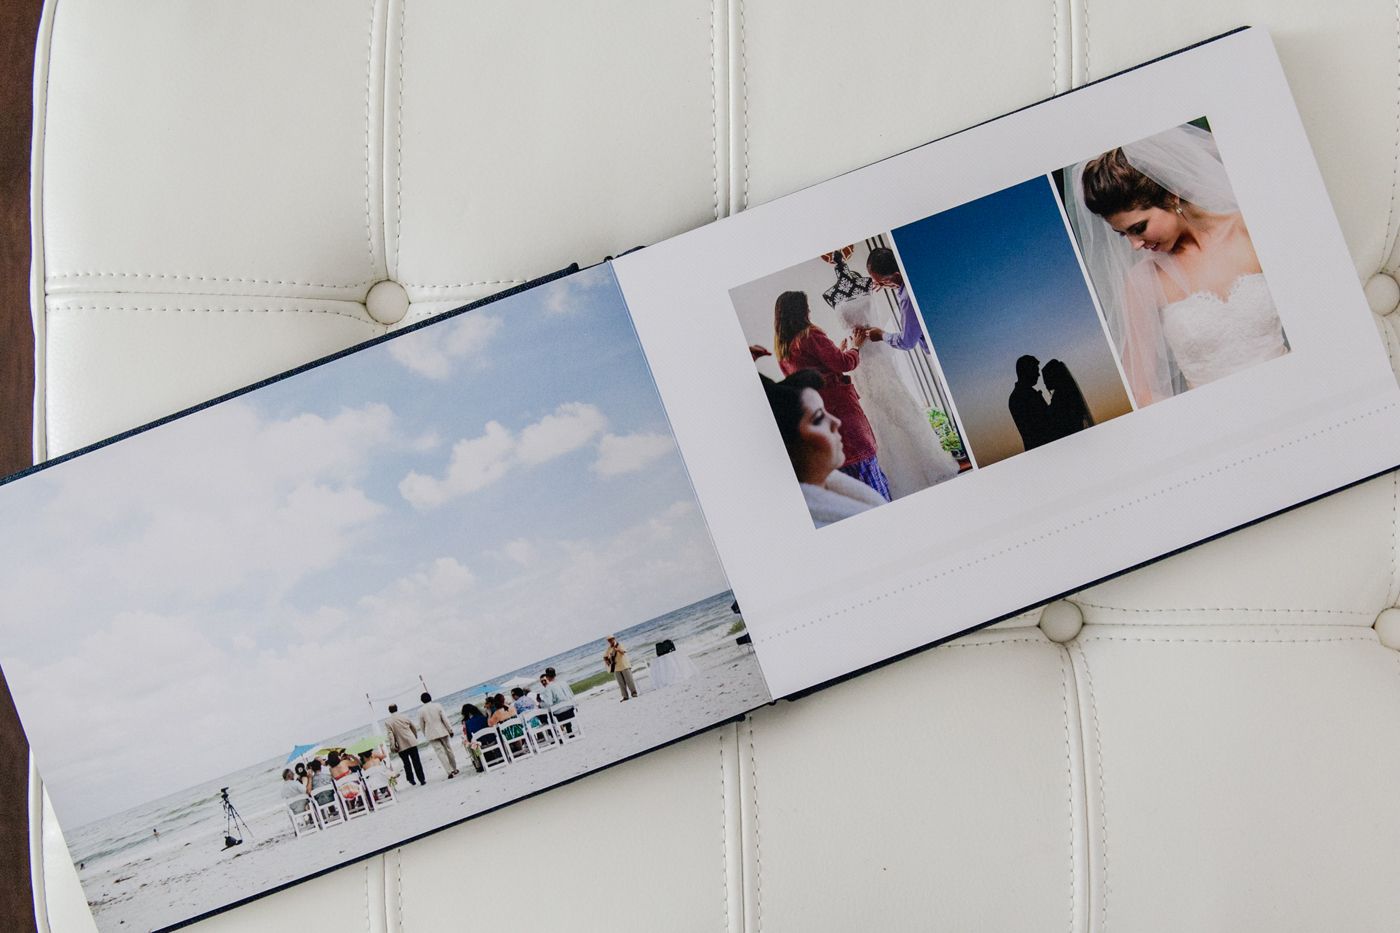 100 Best Instagram Accounts - m Customized wall calendars with photos